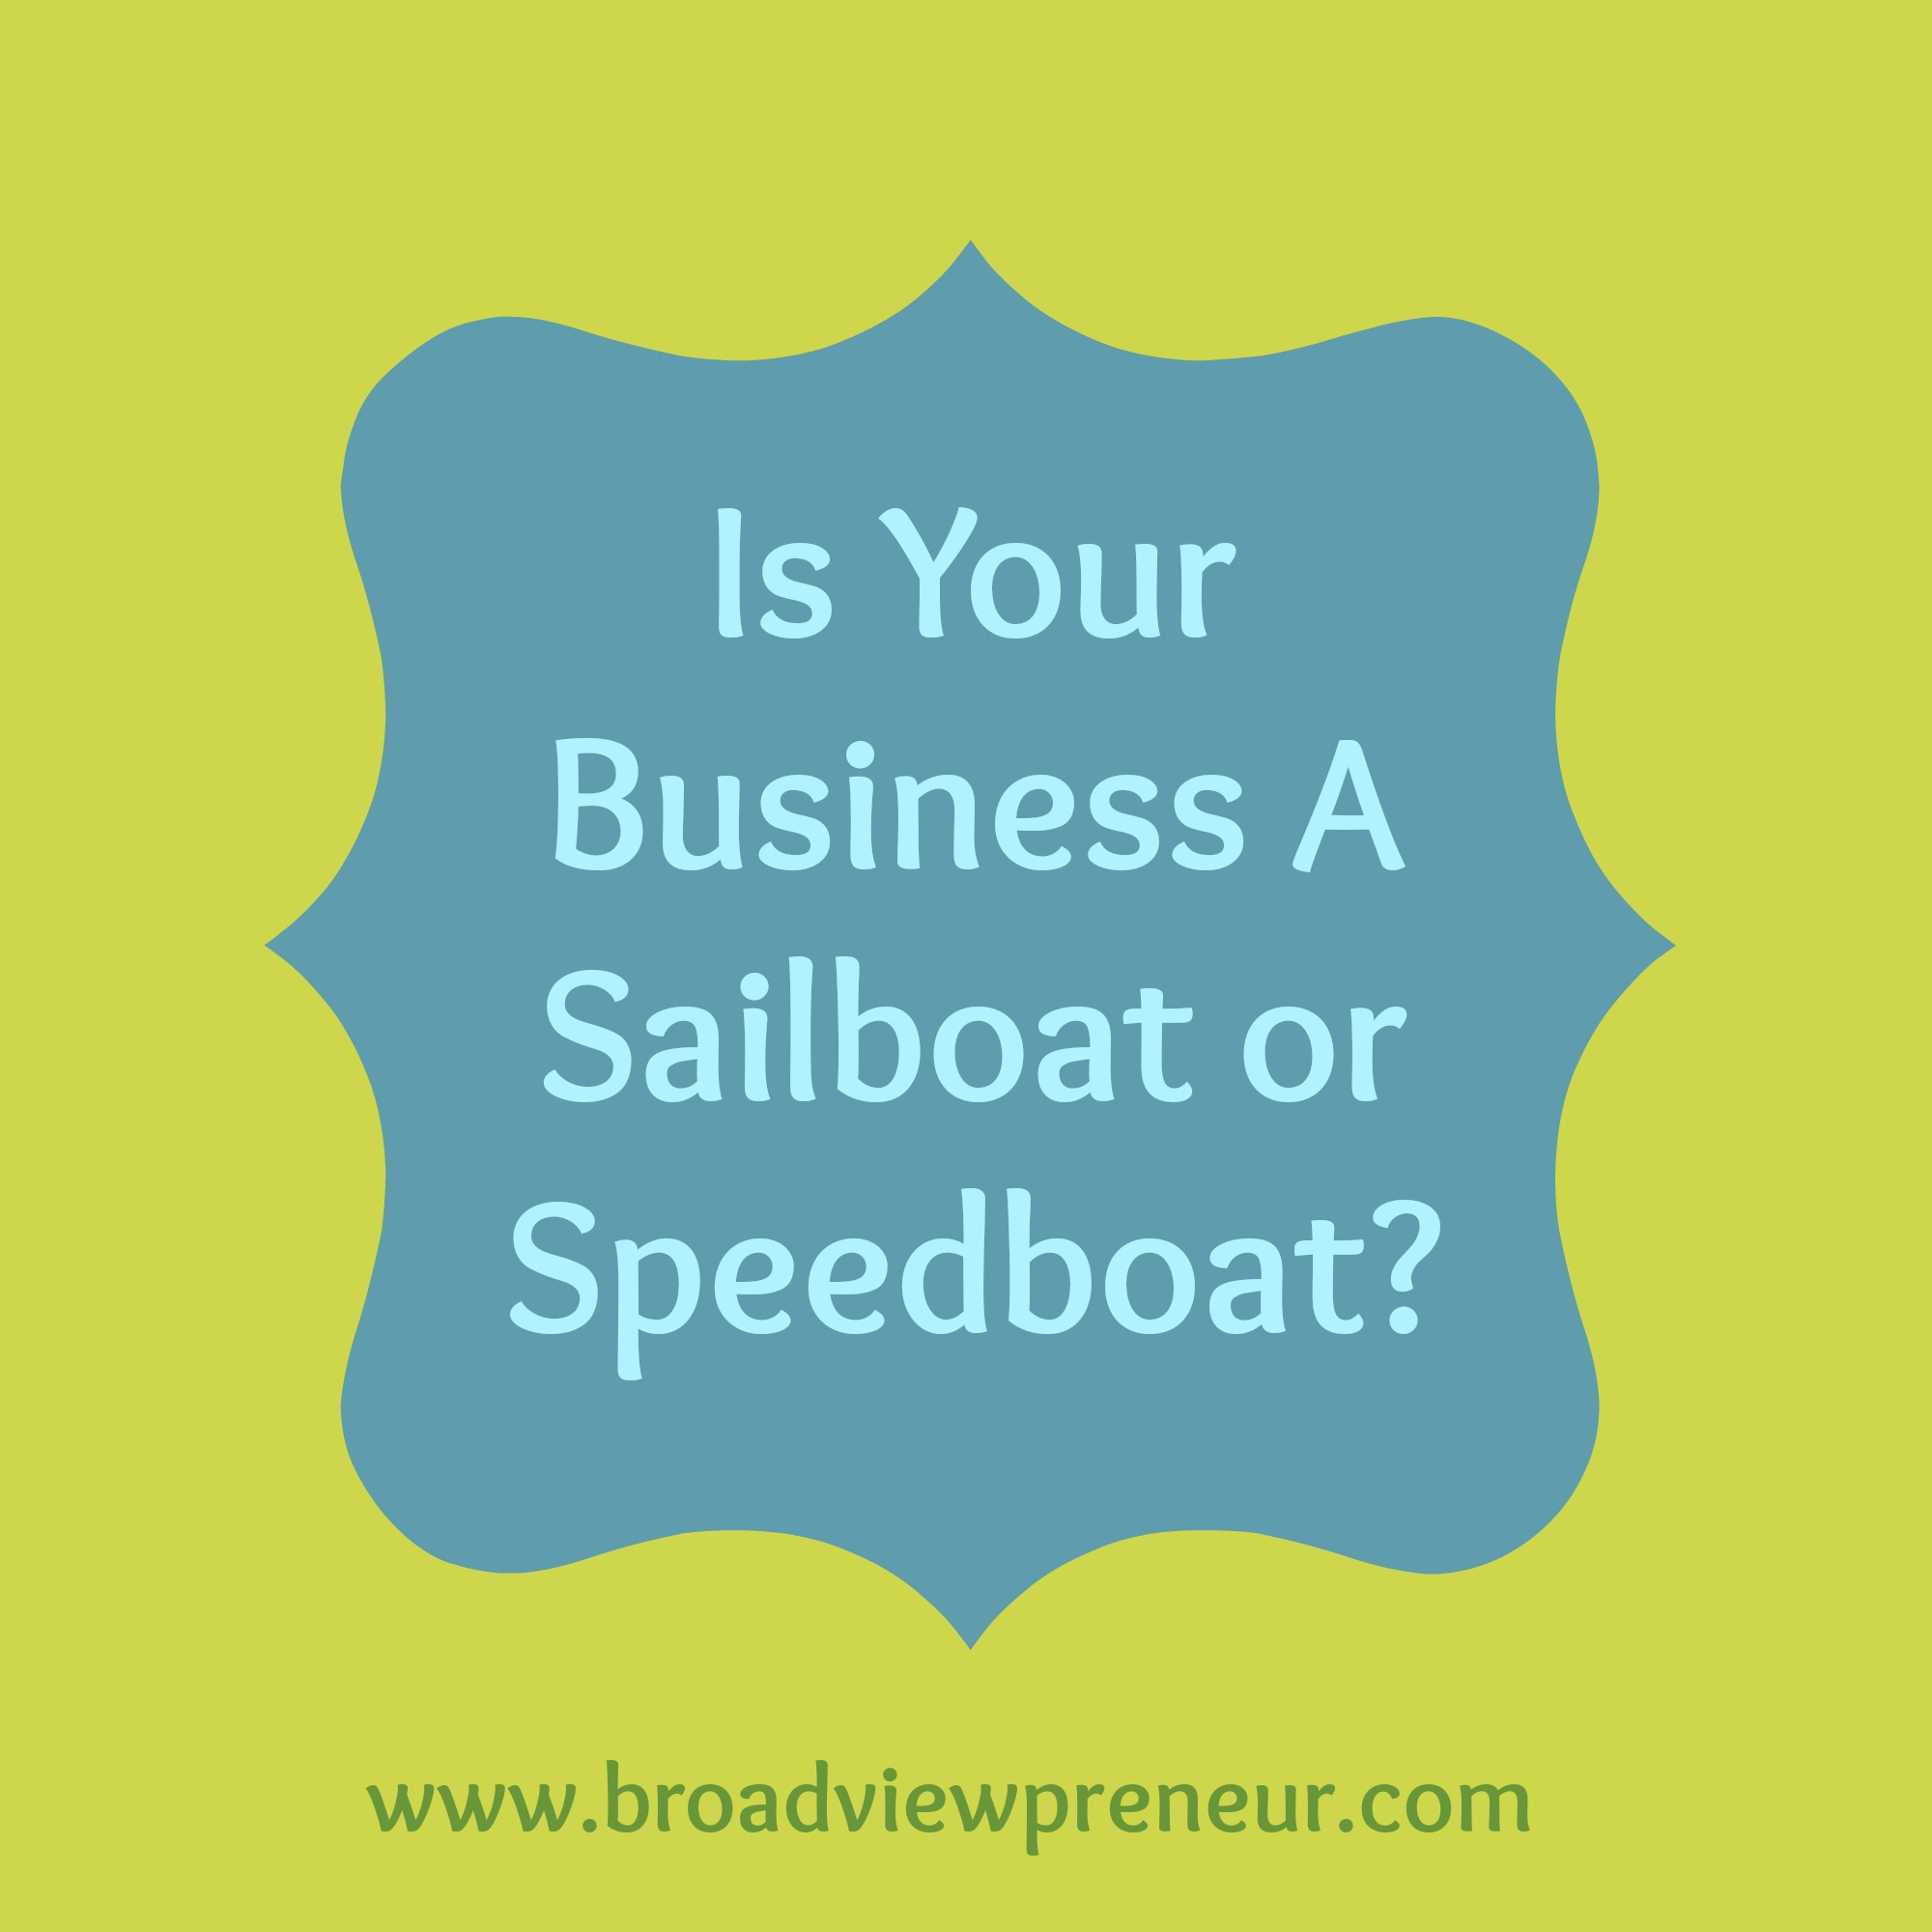 Is Your Business a Sailboat or Speedboat